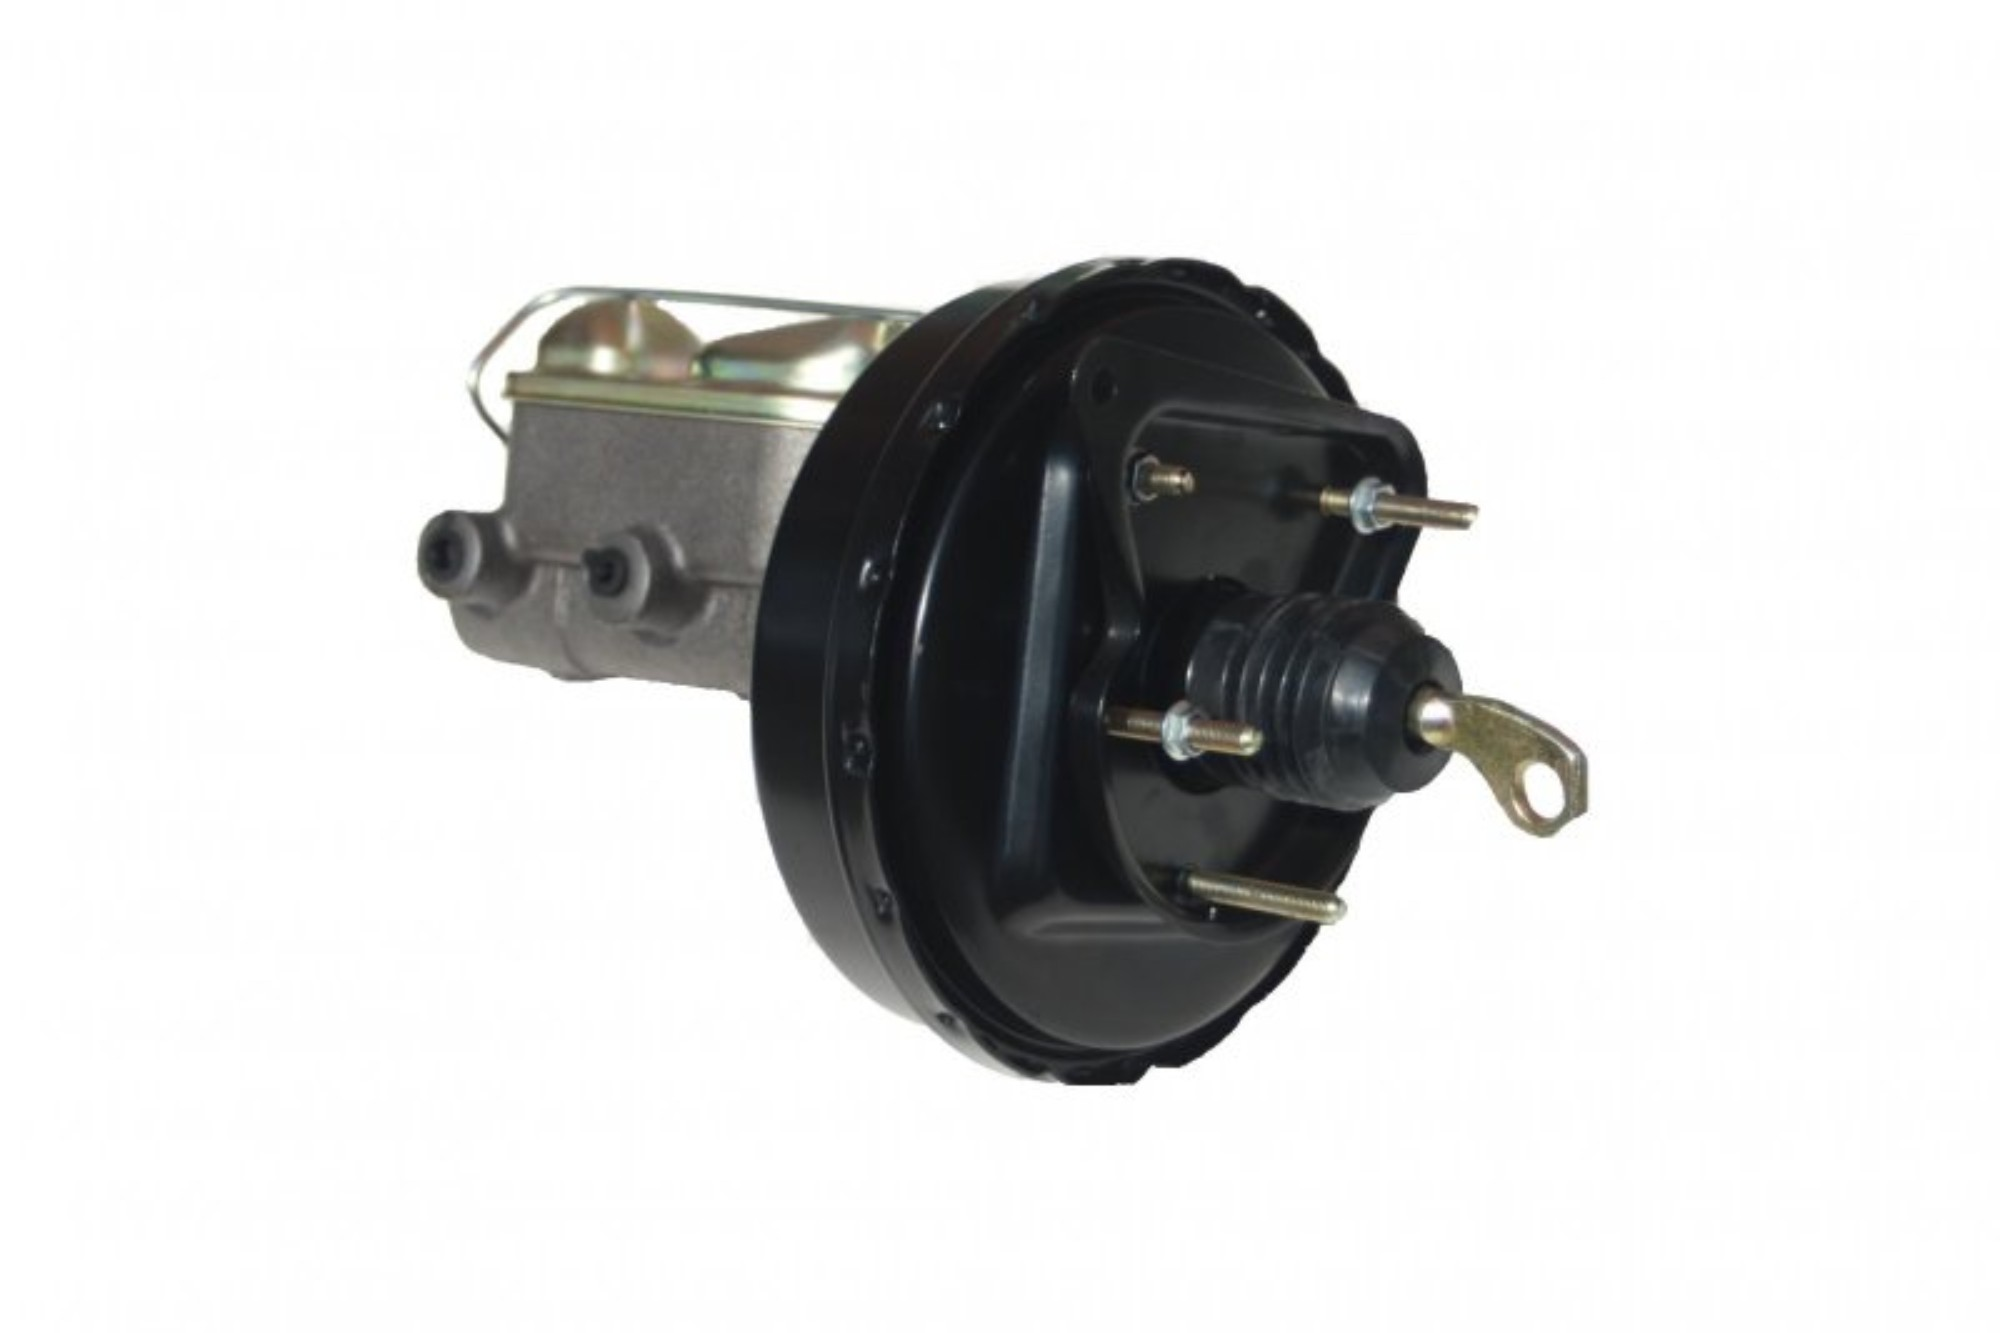 LEED Brakes 034 9 in Power Brake Booster 1 in bore Master Cylinder